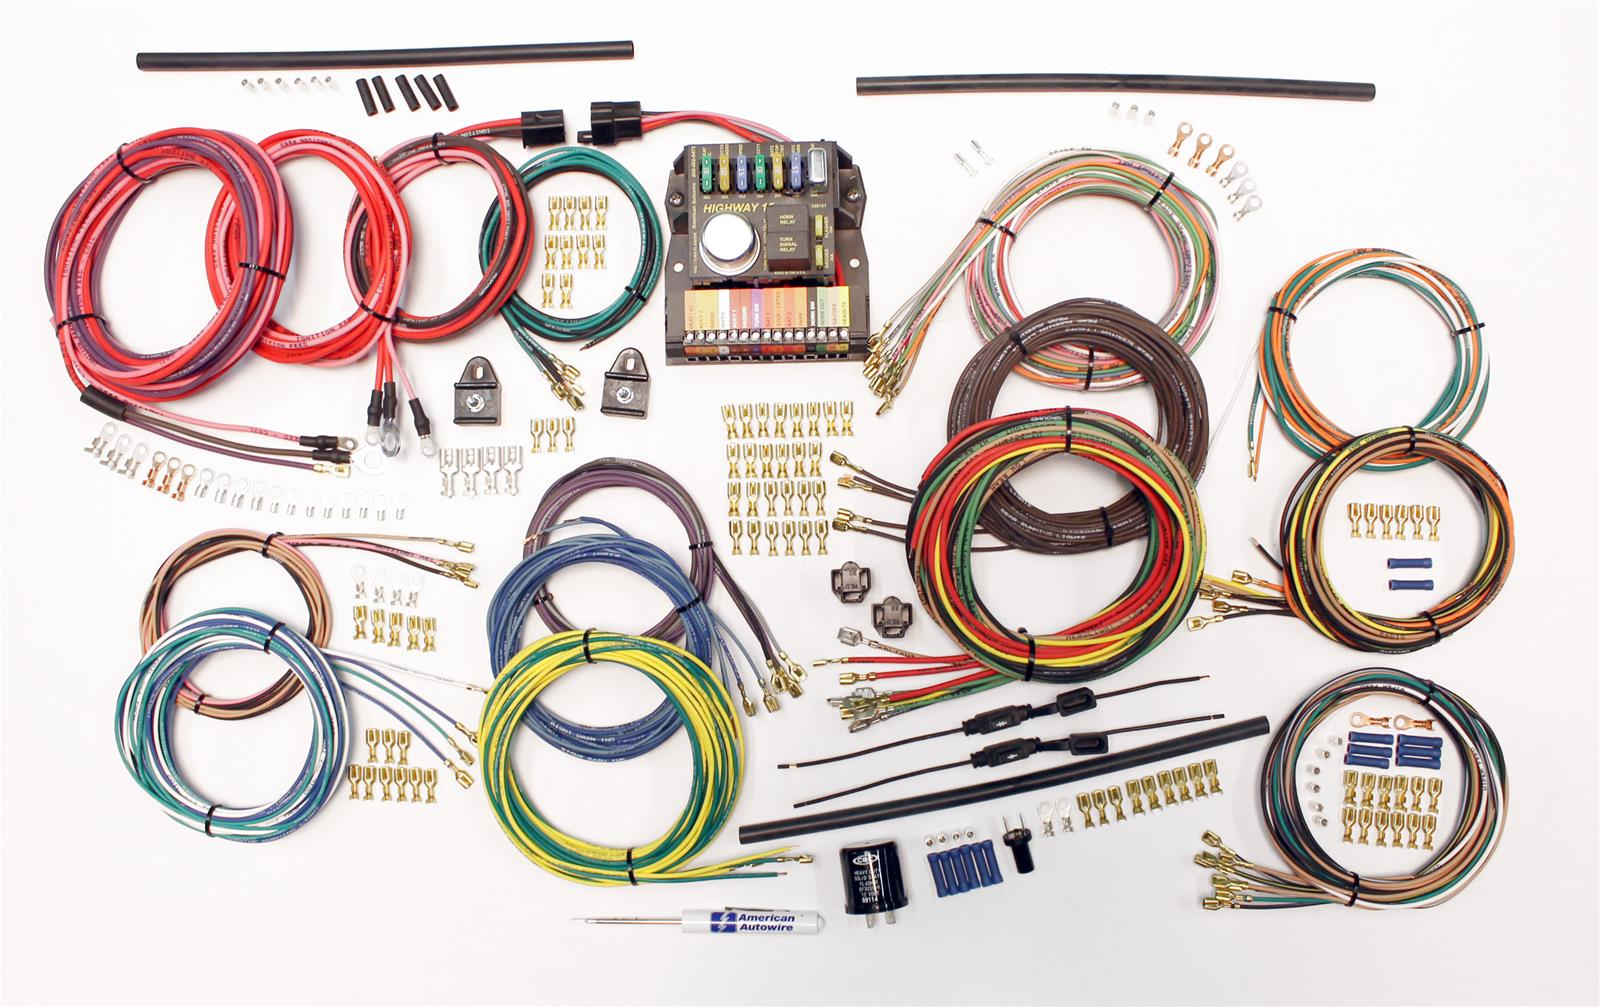 Vw Super Beetle Wiring Harness Library Volkswagen Diagram American Autowire Classic Update Series Kits 510419 Free Shipping On Orders Over 49